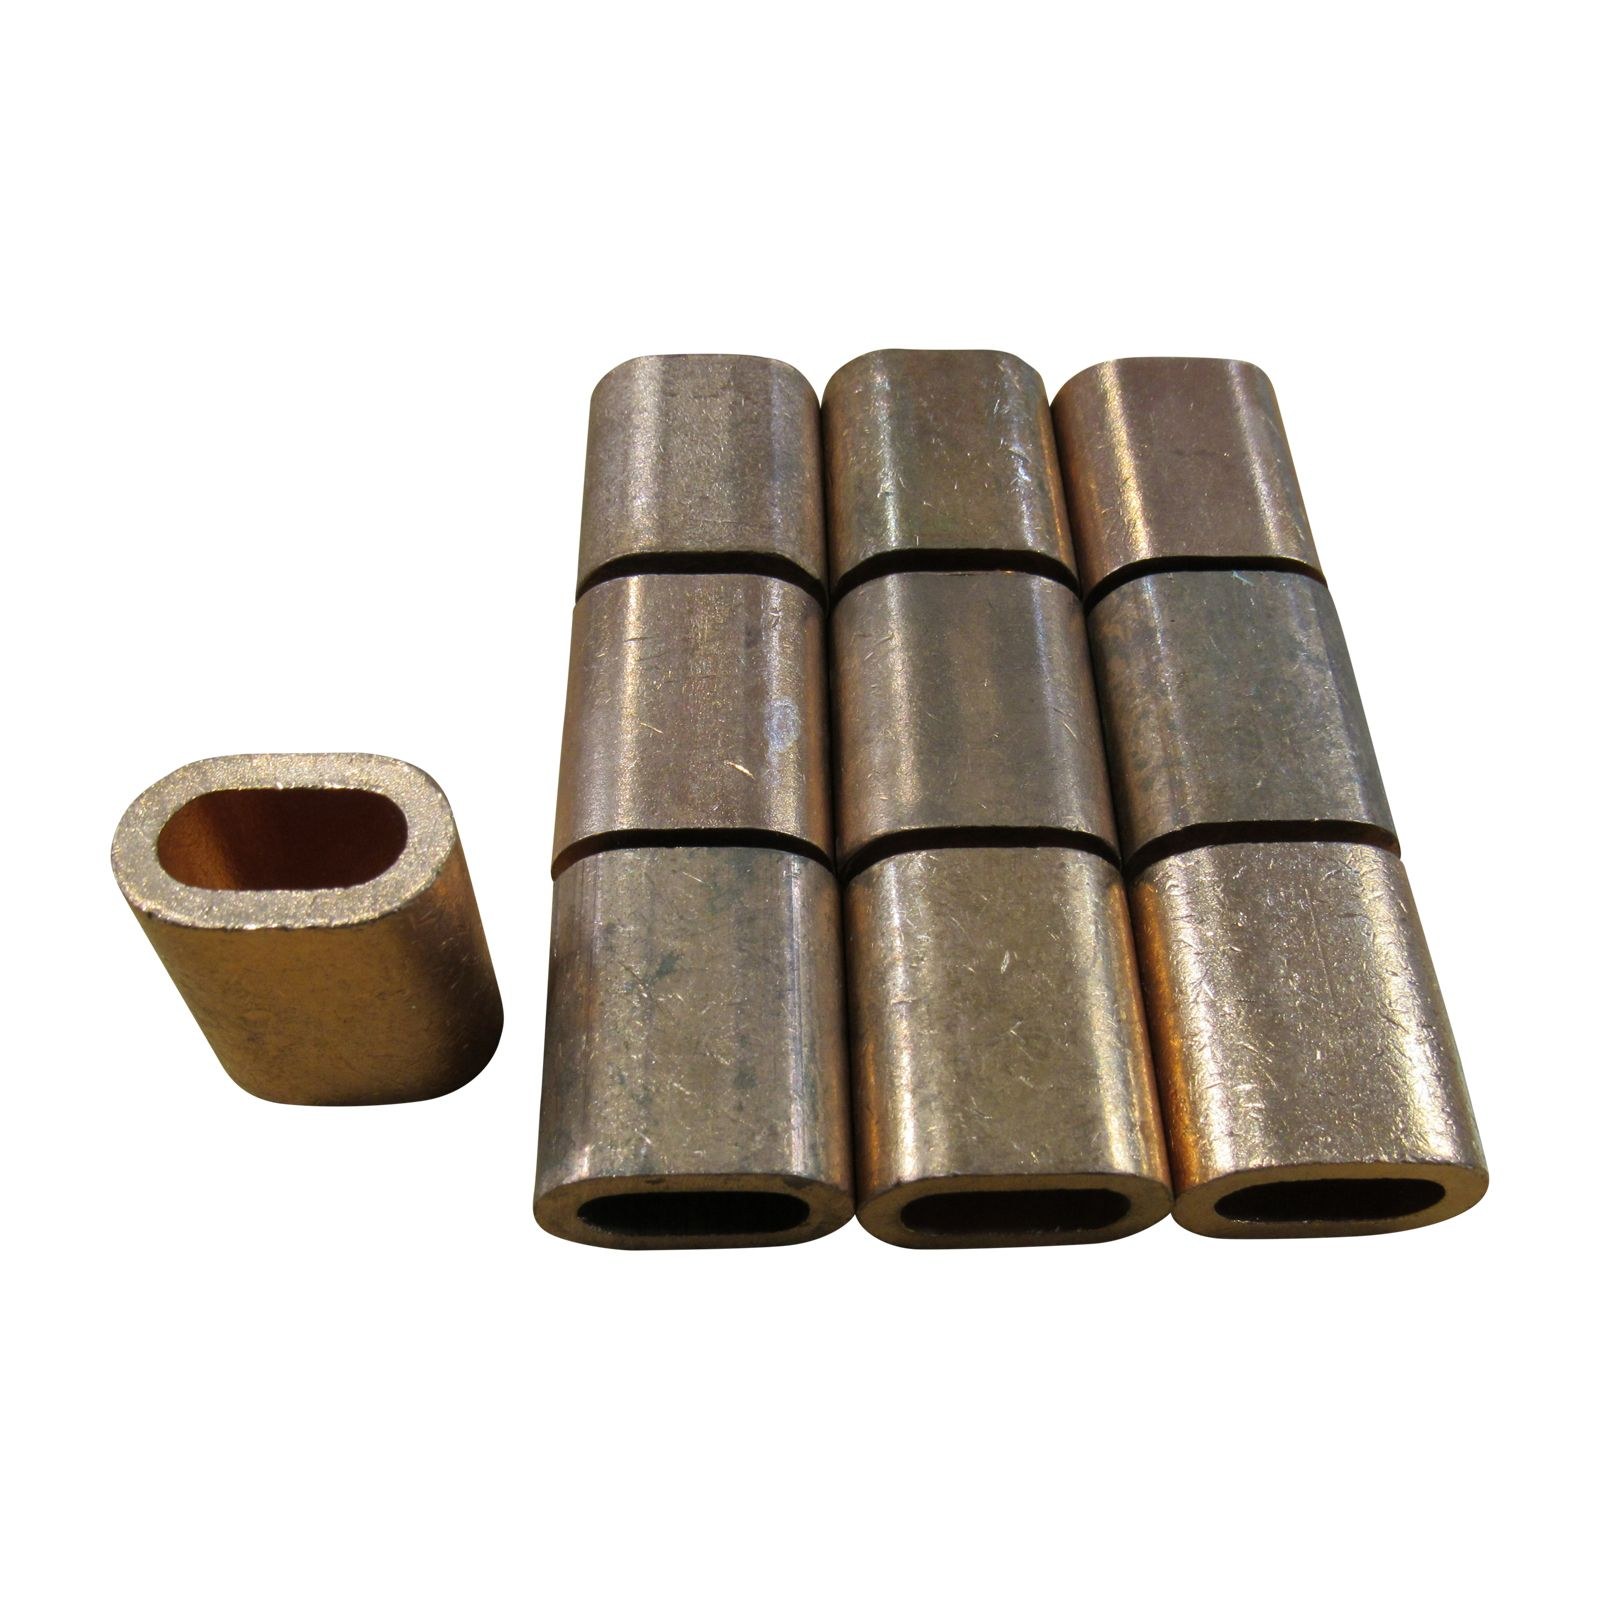 Secure Fix Direct 3.5mm Oval Copper Ferrules Sleeves Stainless Rope X10